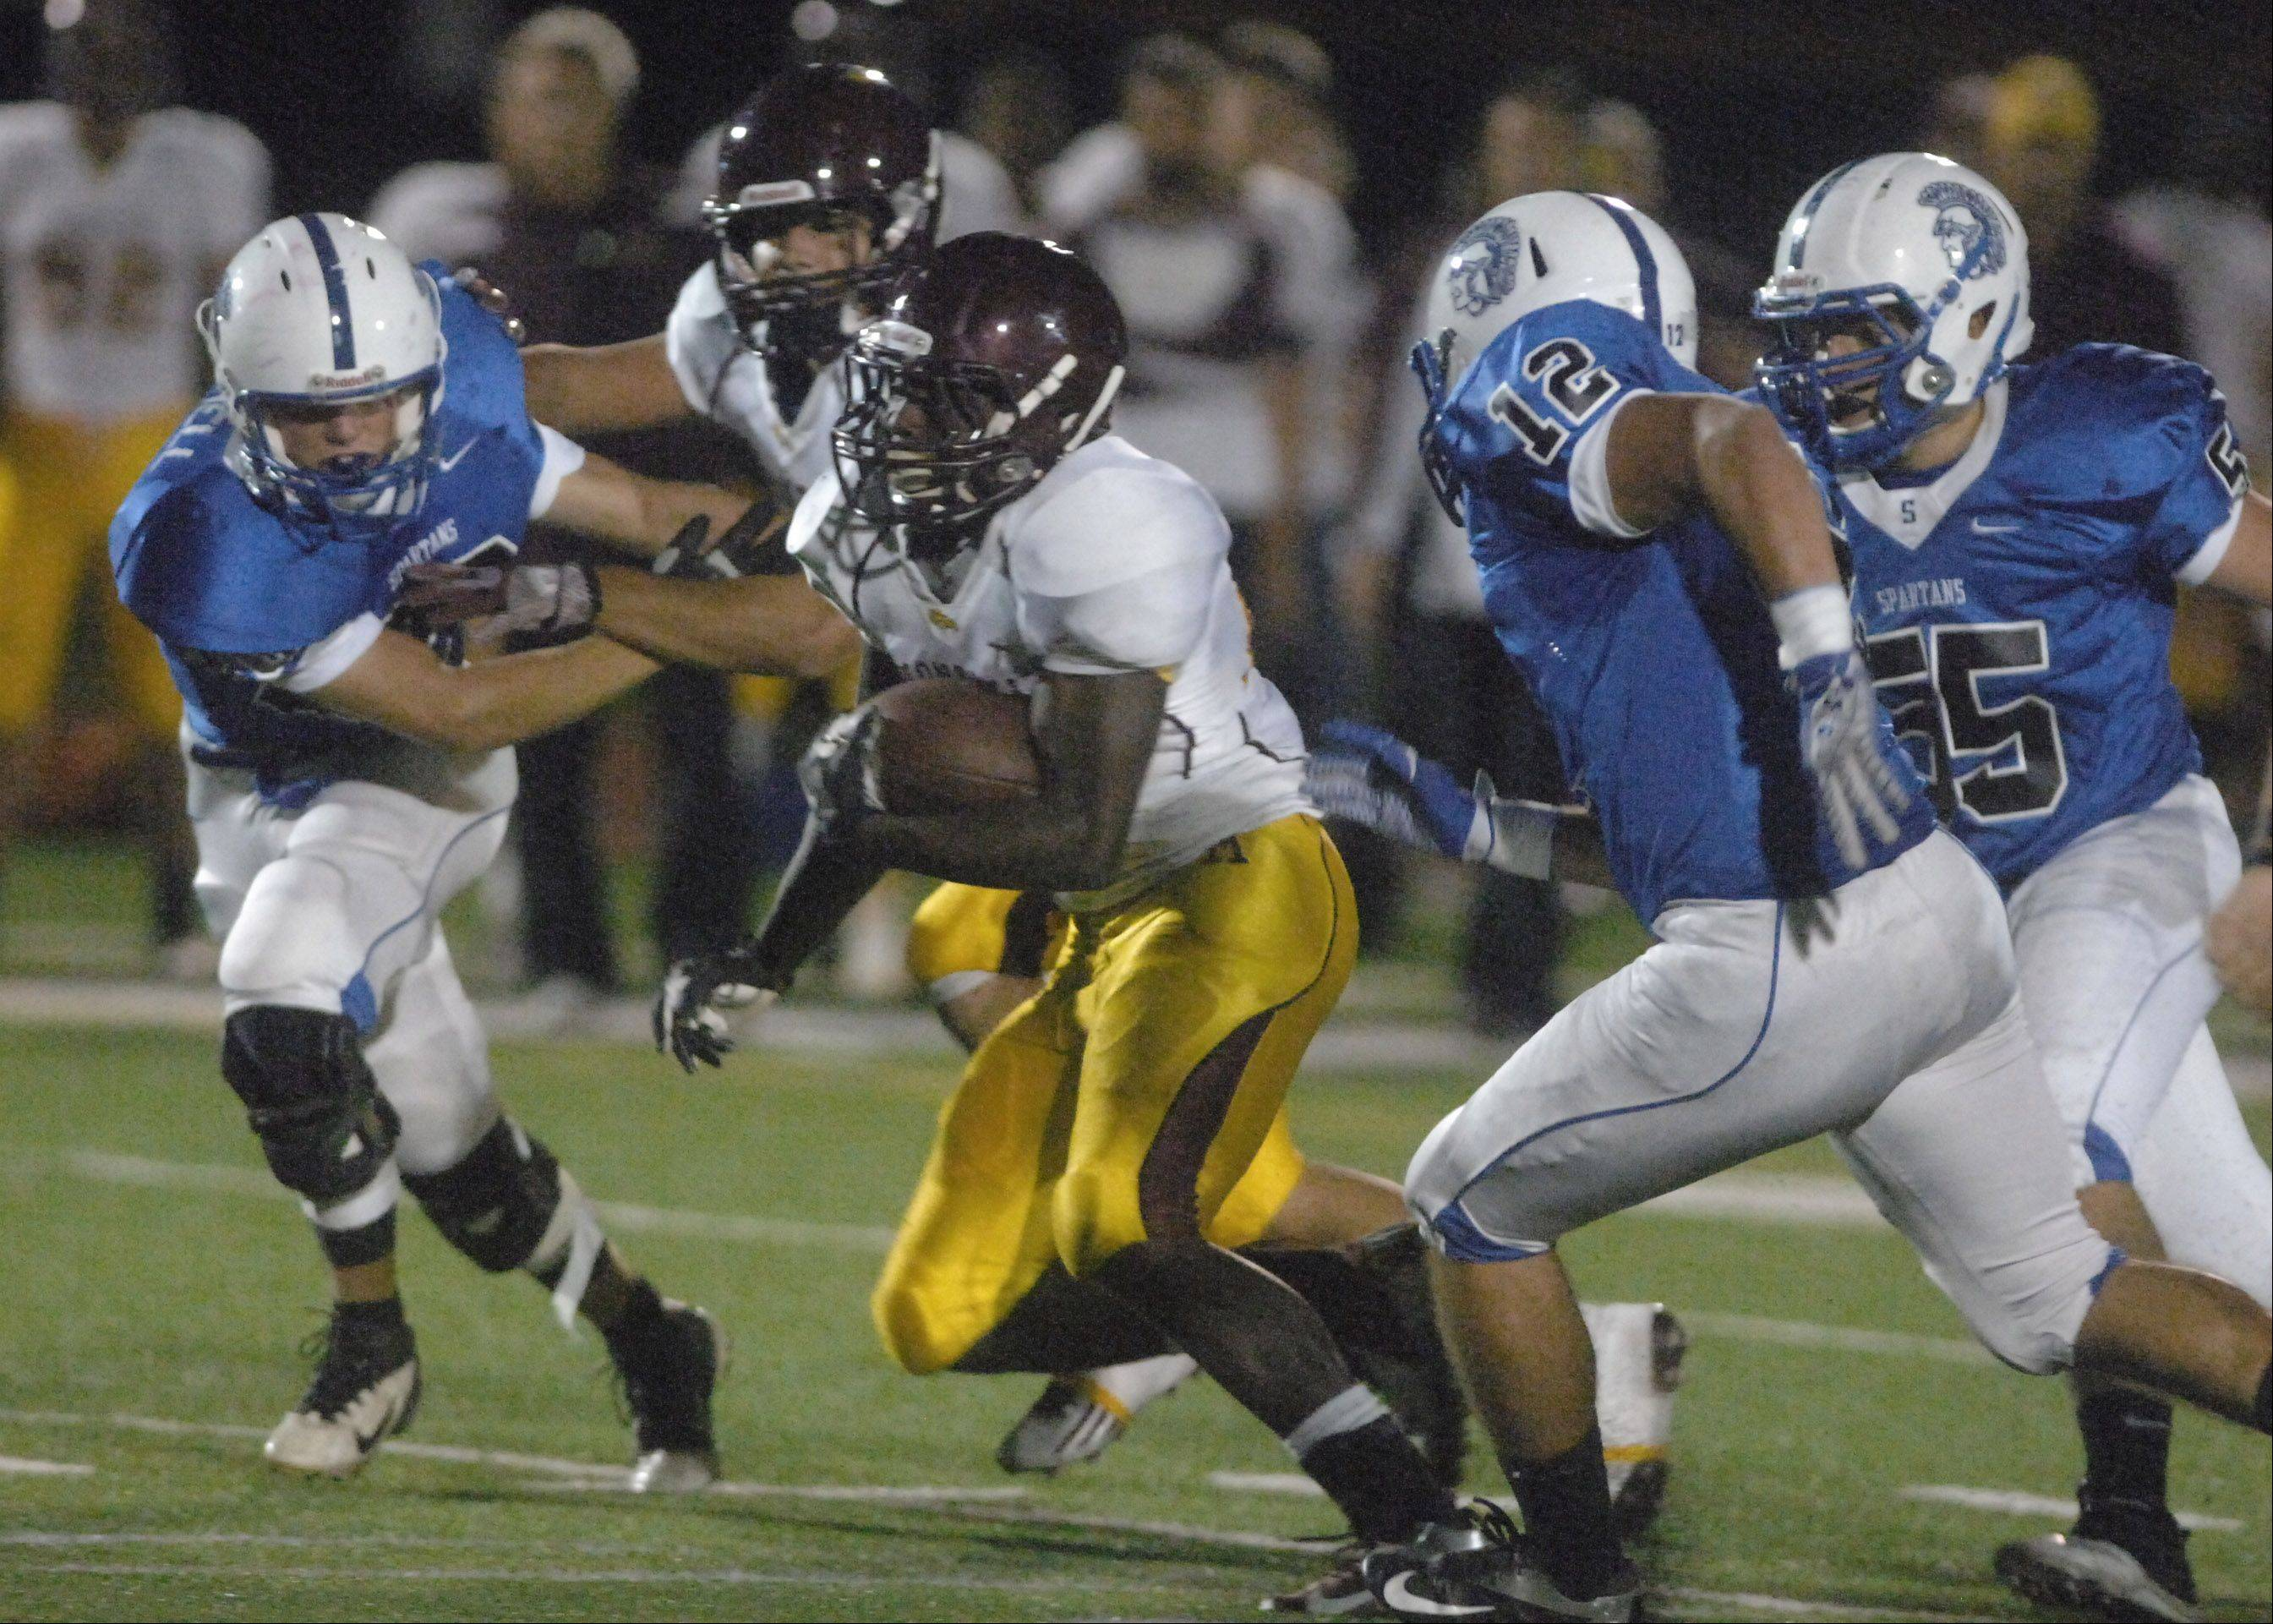 Dimitri Taylor of Montini runs with the ball during the Montini vs. St Francis football game Friday in Glen Ellyn.